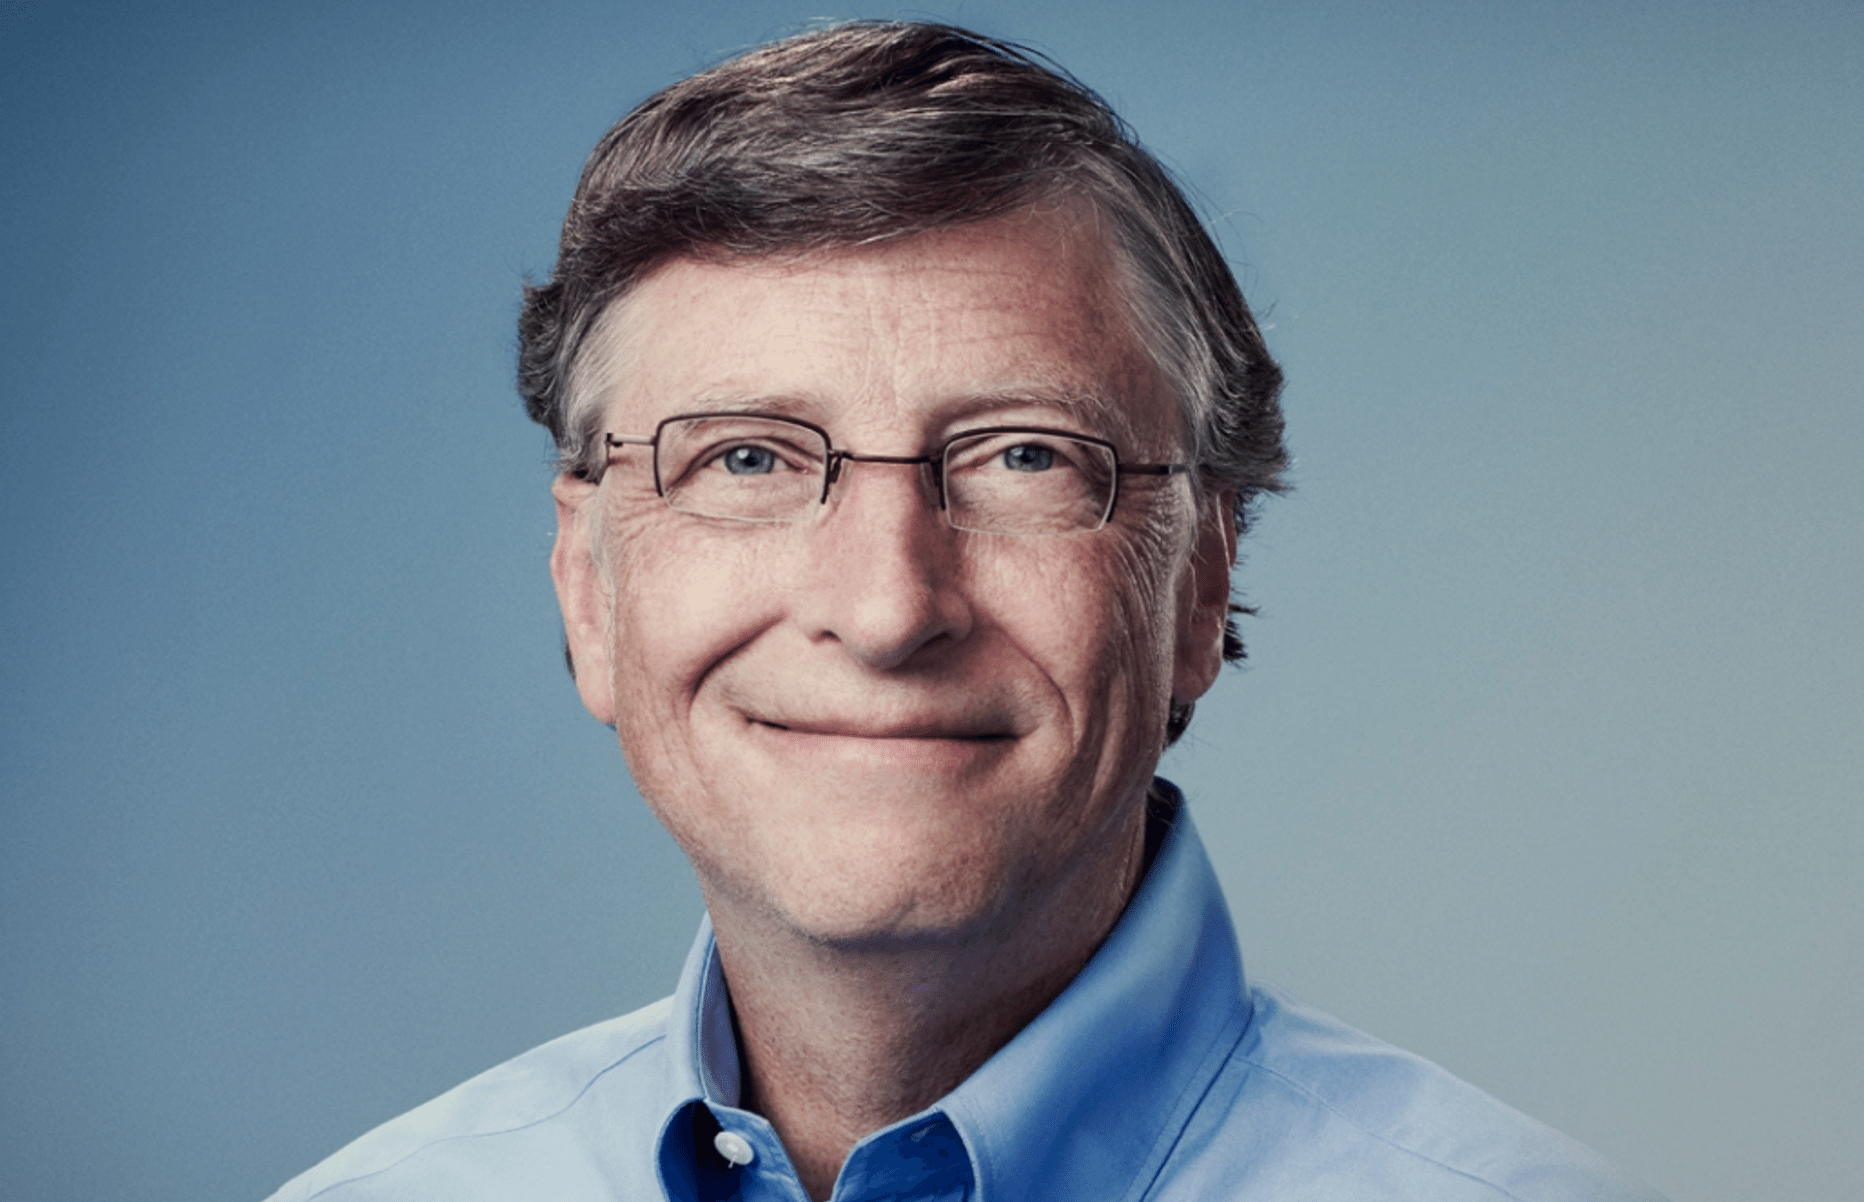 bill gates: u.s. needs to invest in innovation, r&d